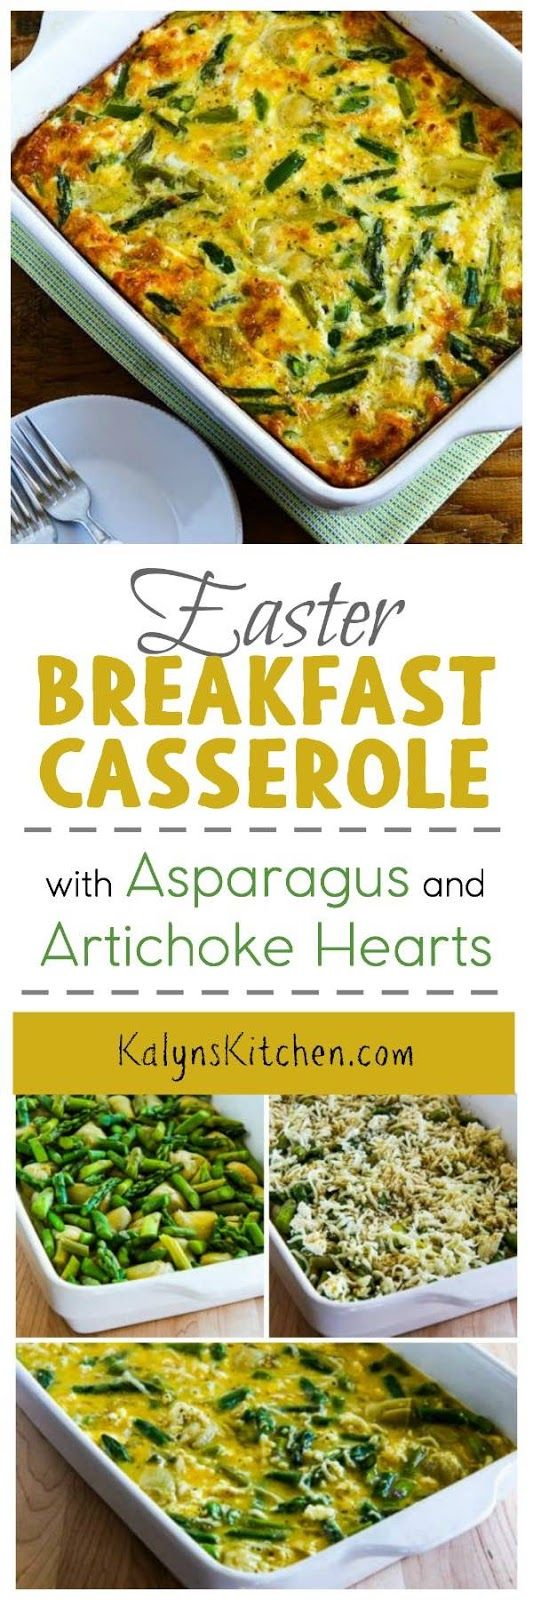 Easter Breakfast Casserole with Asparagus and Artichoke Hearts found on KalynsKitchen.com